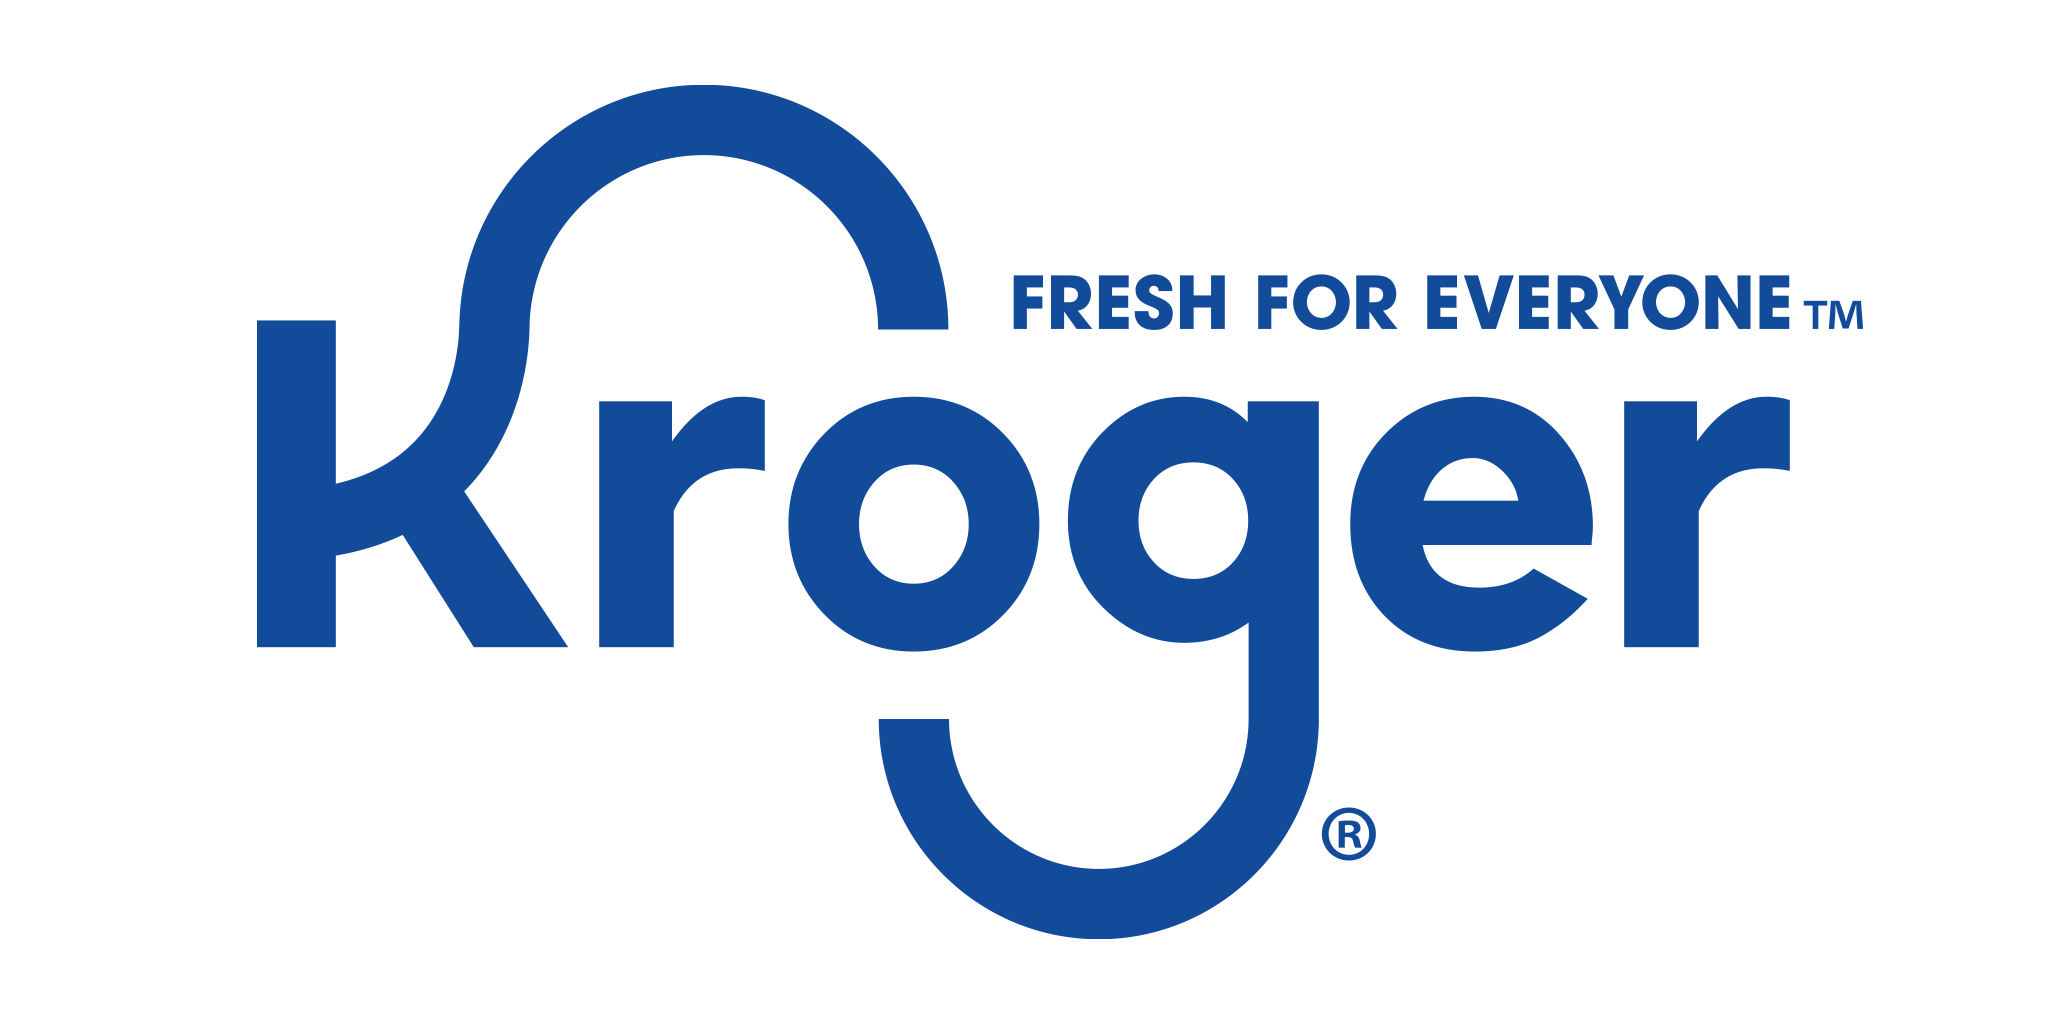 Where to Buy/Ralston-Family-Farms-Grocers-kroger-logo.png